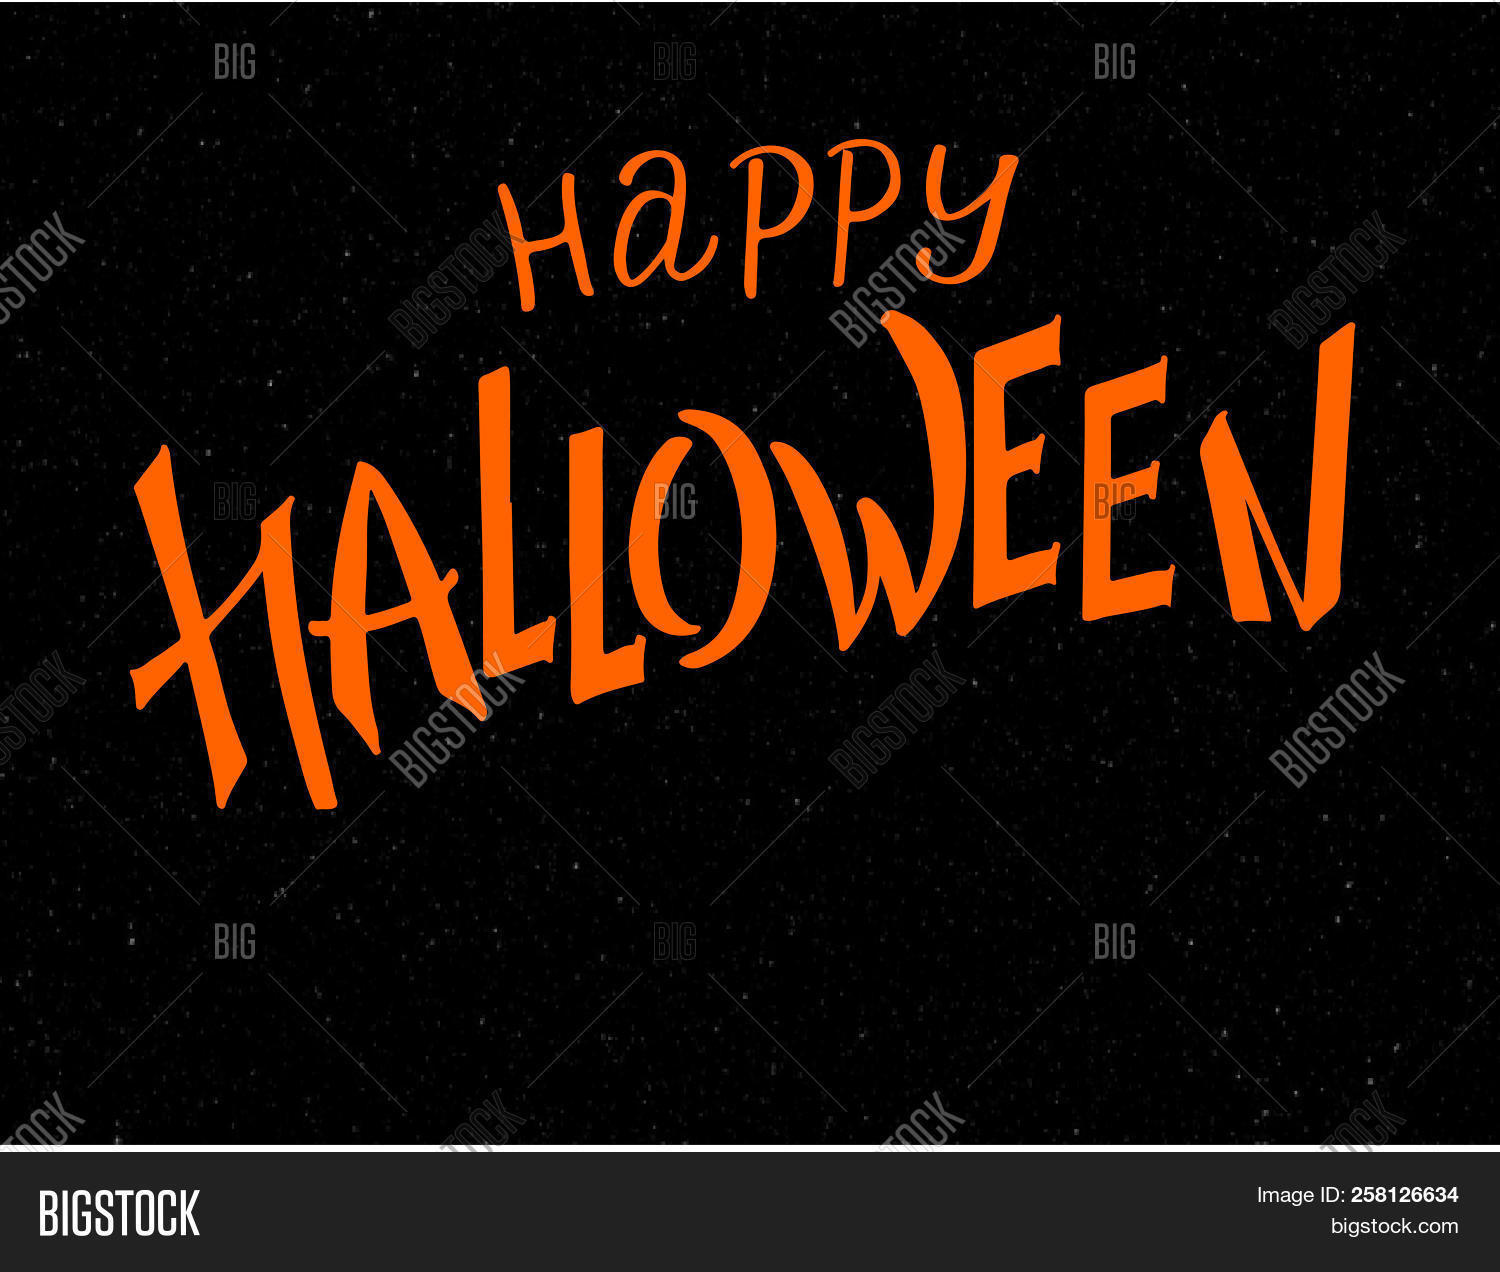 Halloween Poster Background Free.Happy Halloween Poster Image Photo Free Trial Bigstock